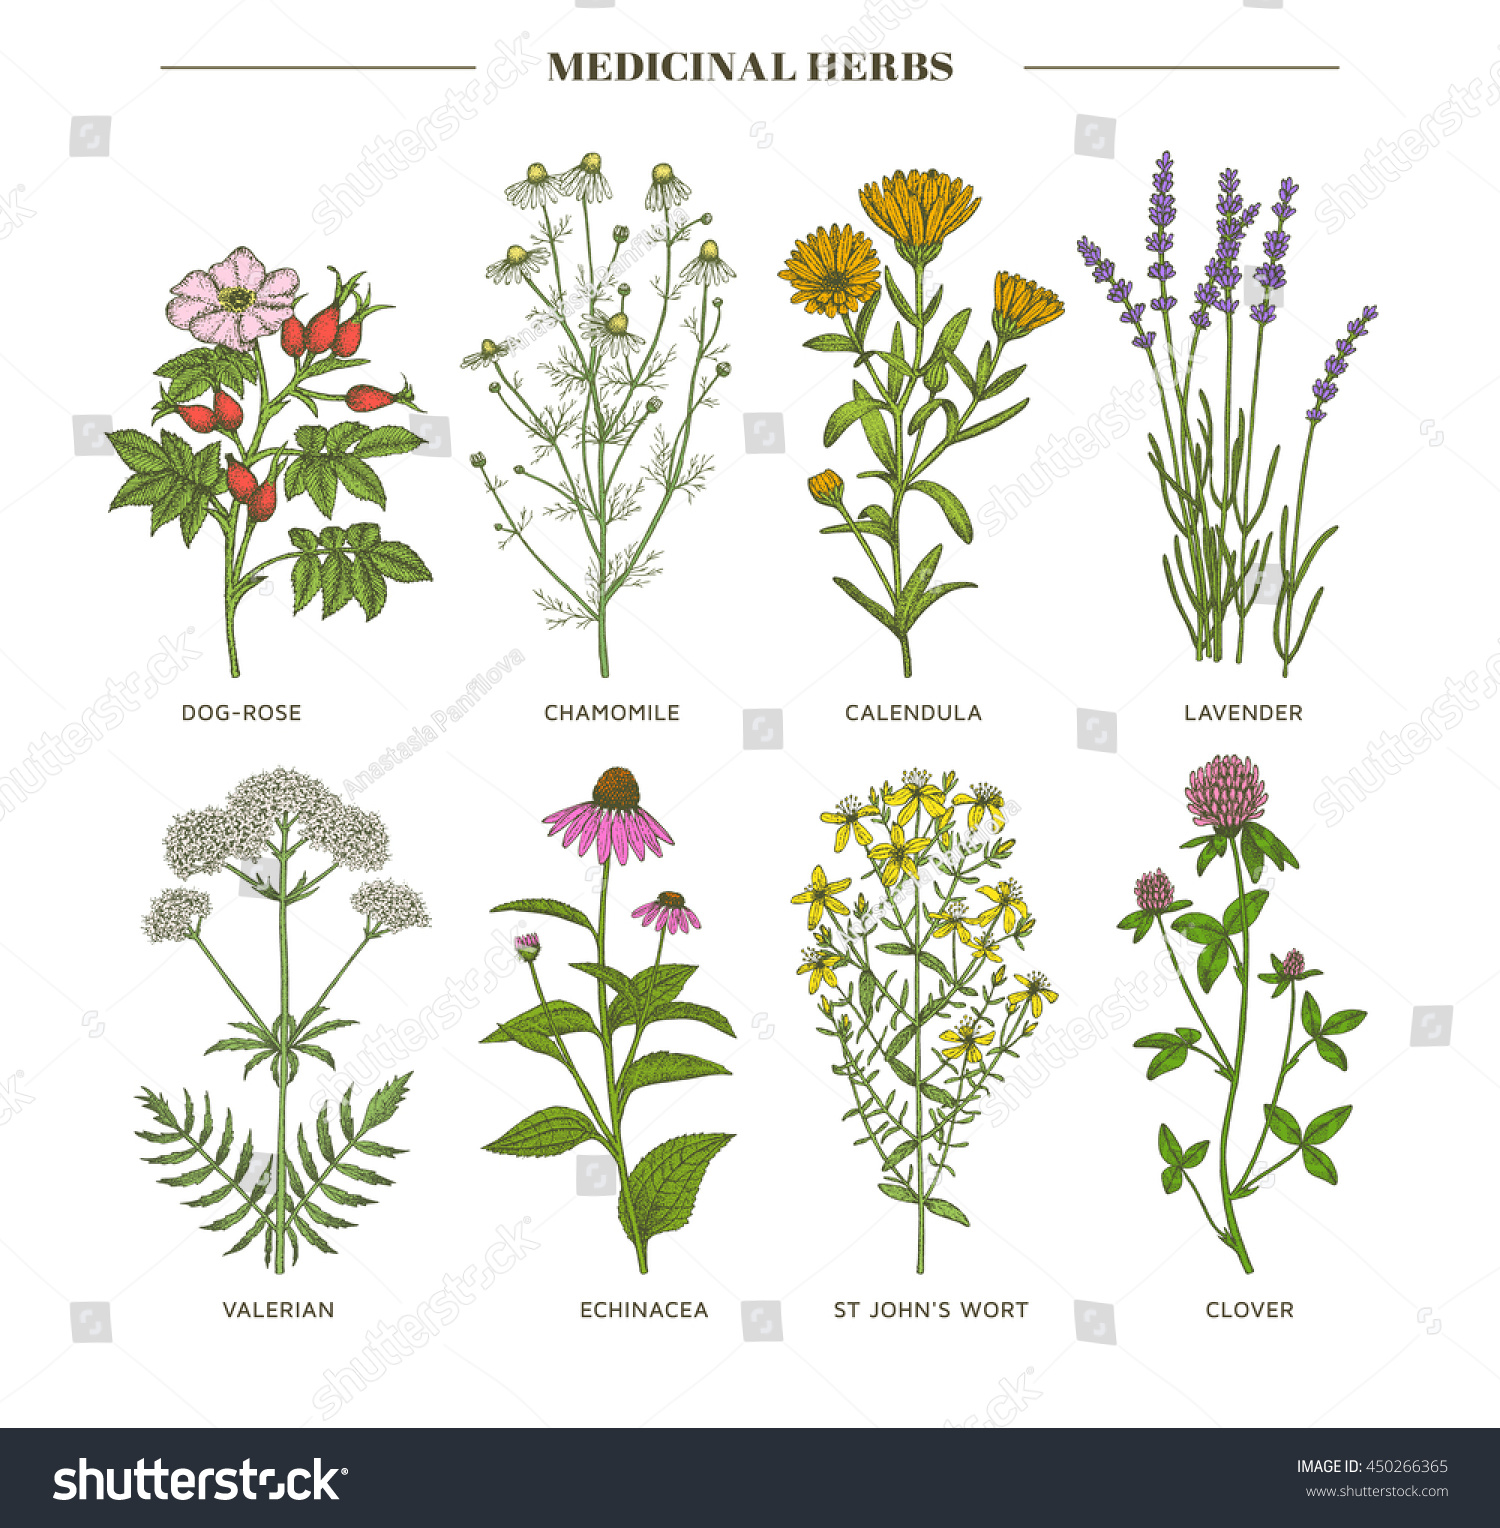 Vector hand drawn collection of medicinal cosmetics herbs St John's Wort echinacea lavender valerian chamomile calendula dog-rose clover plants